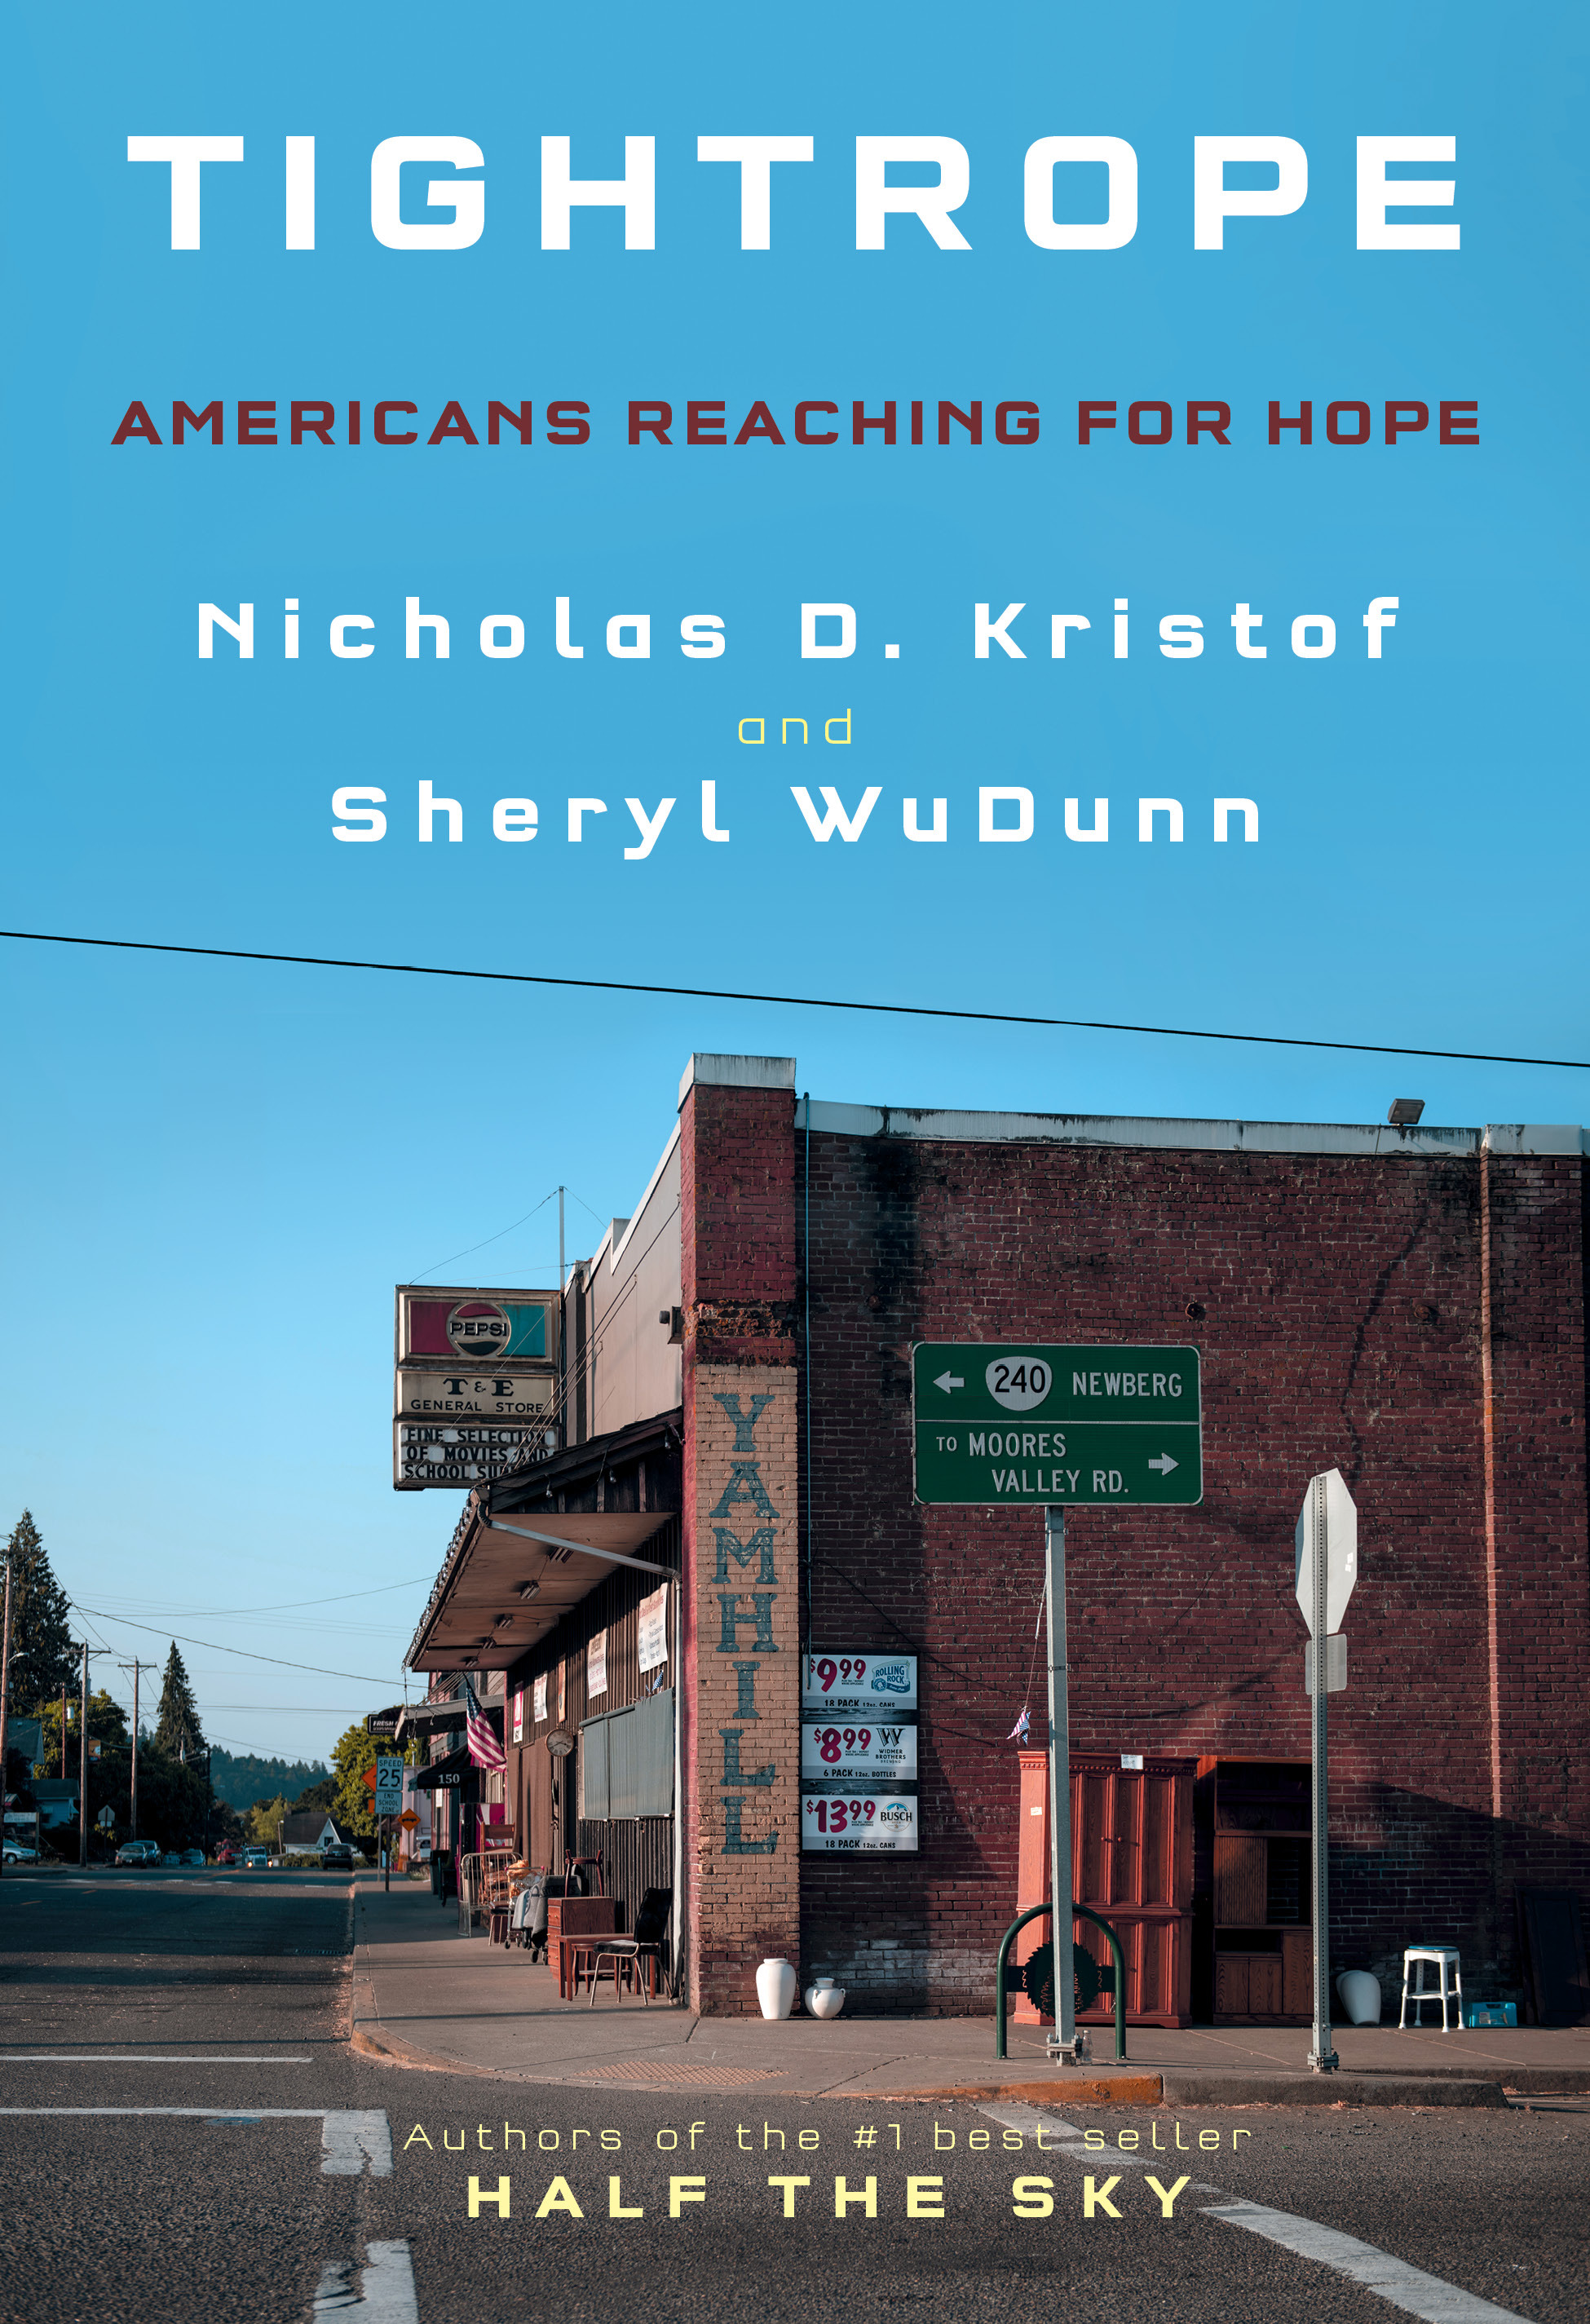 'Tightrope' by Nicholas D. Kristof and Sheryl WuDunn